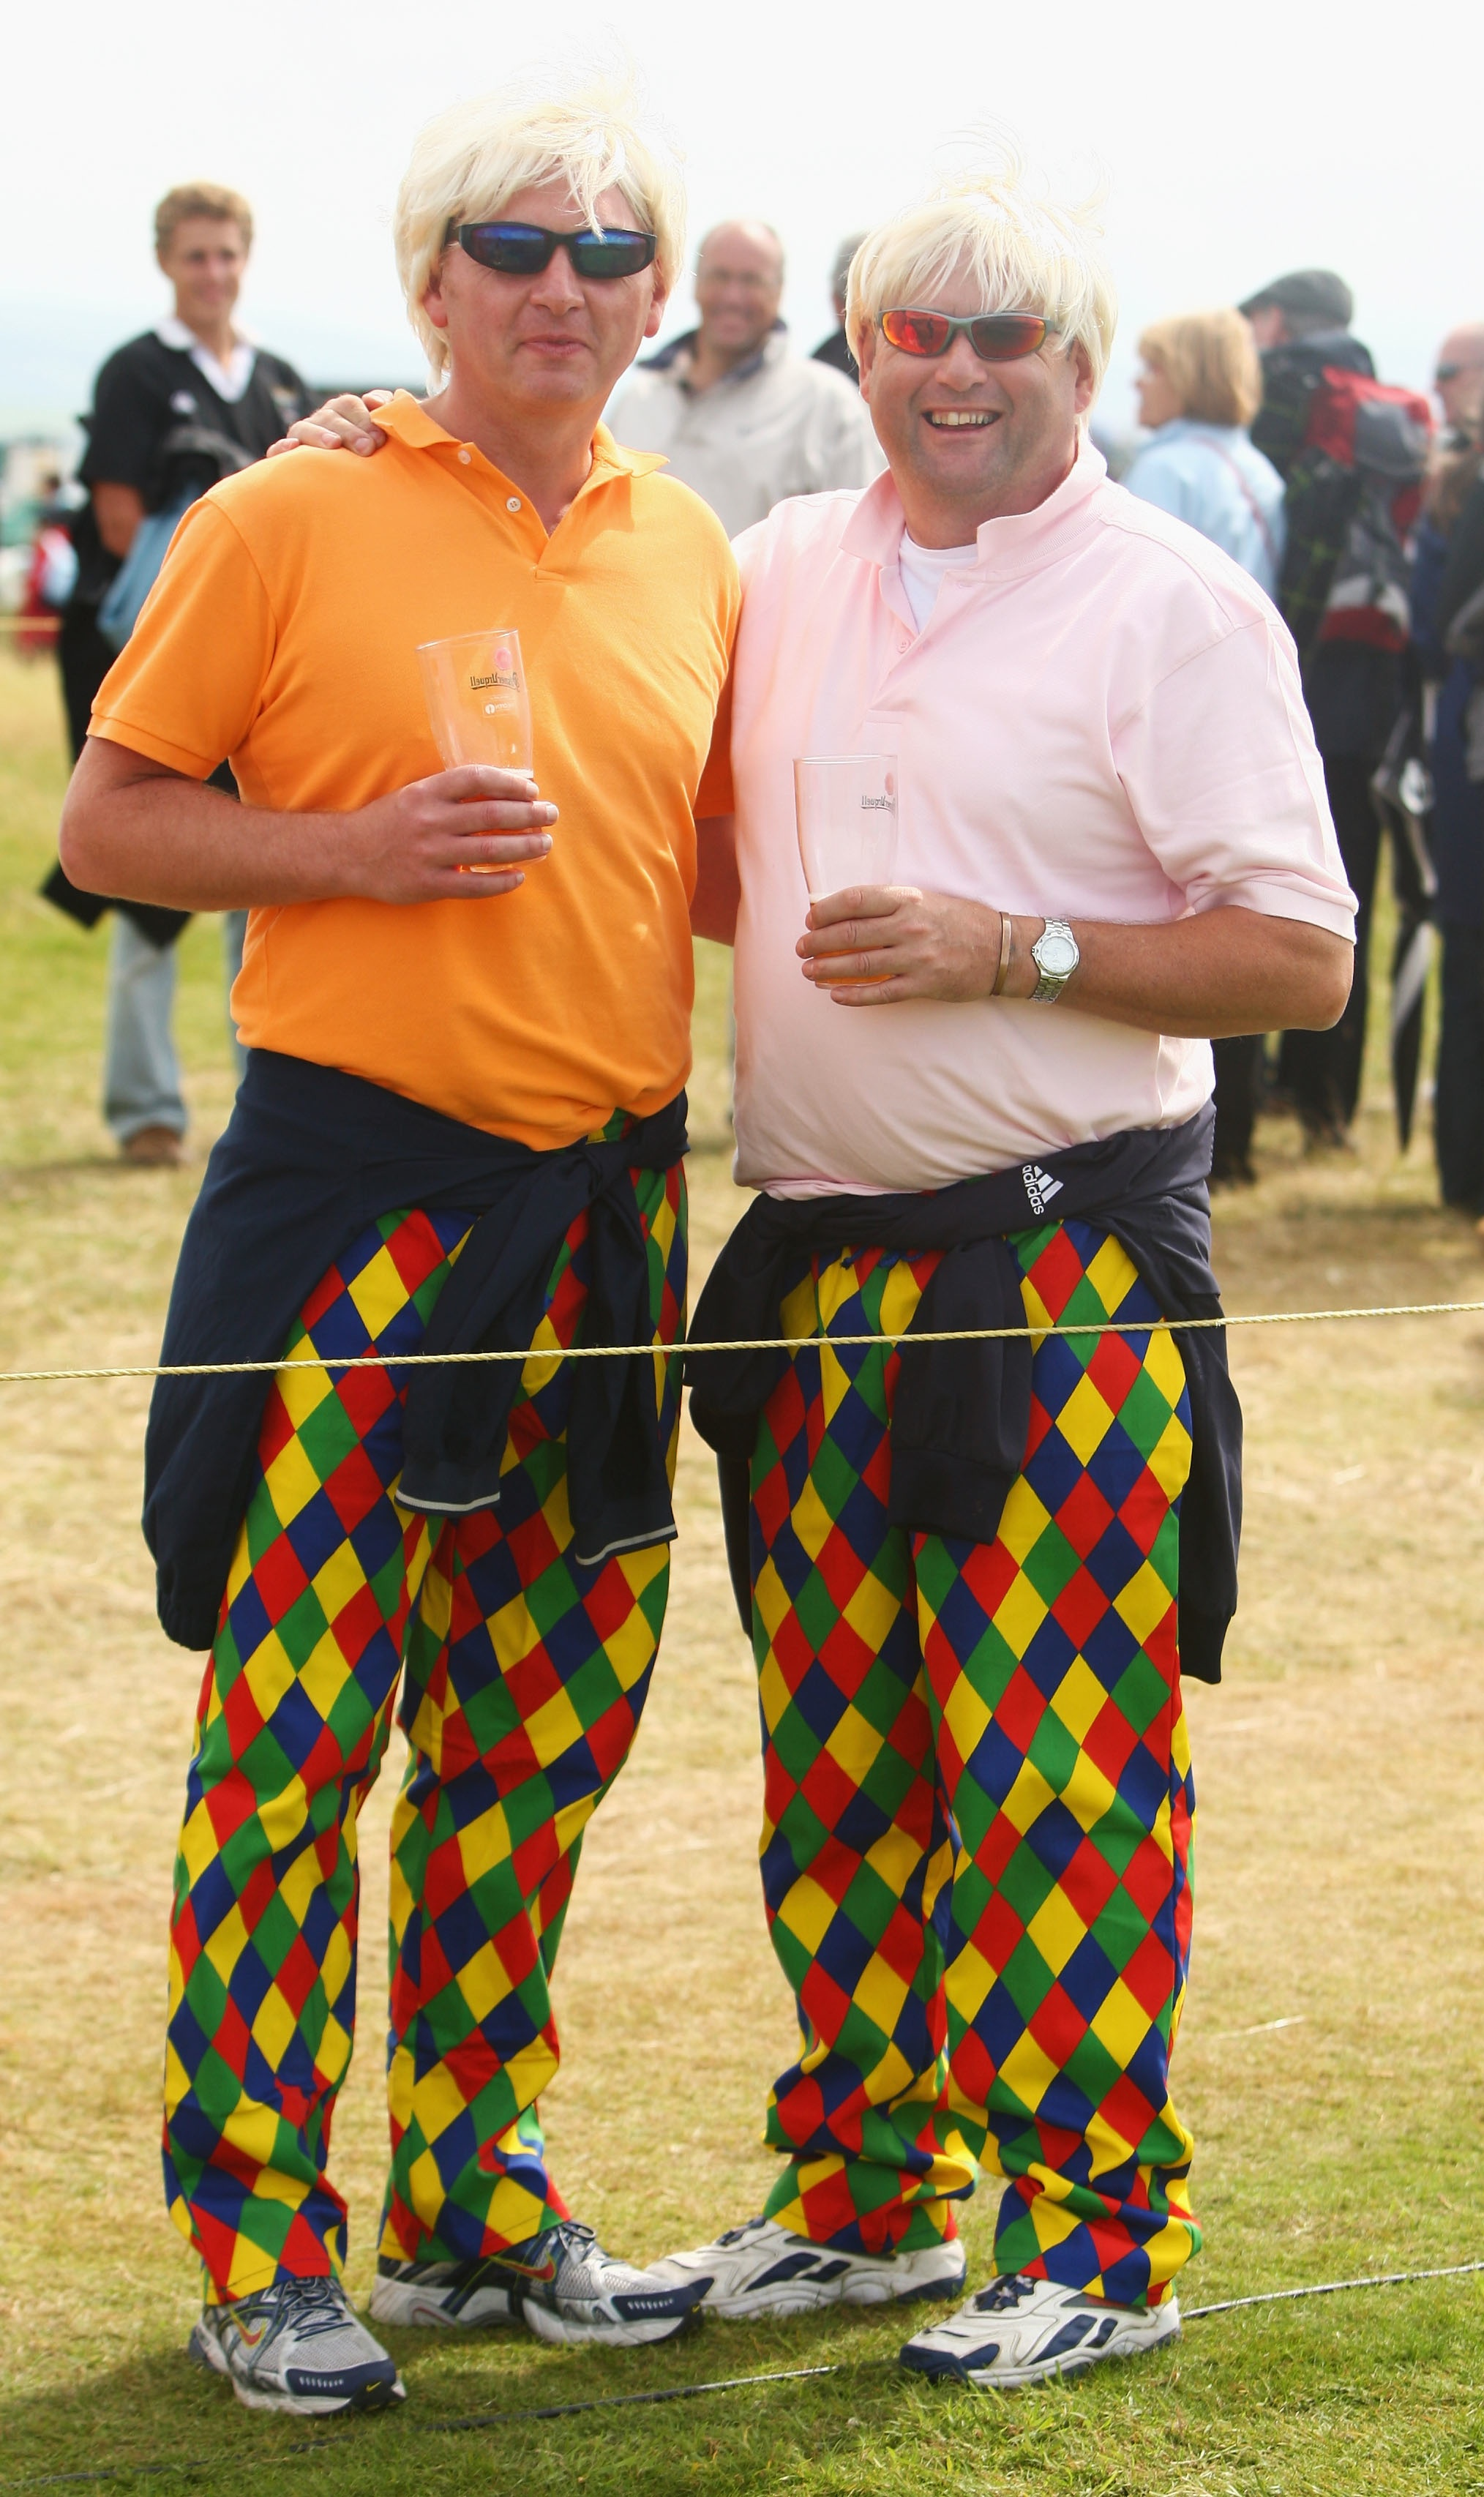 John Daly fans show their support in a colorful way.